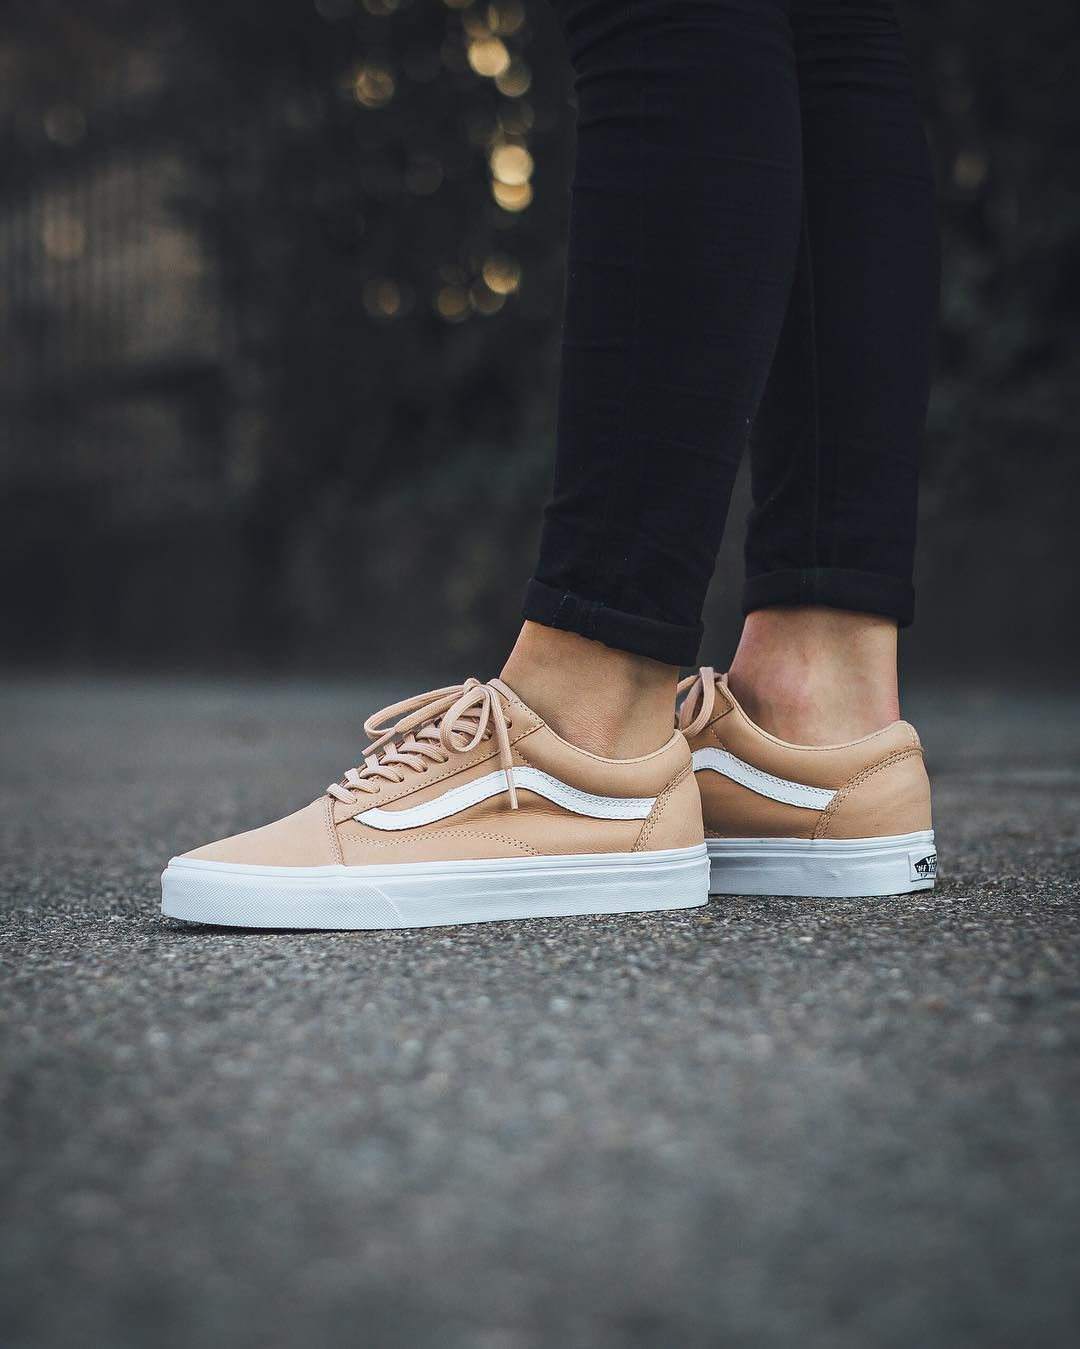 950c3c39b8 VANS Old Skool